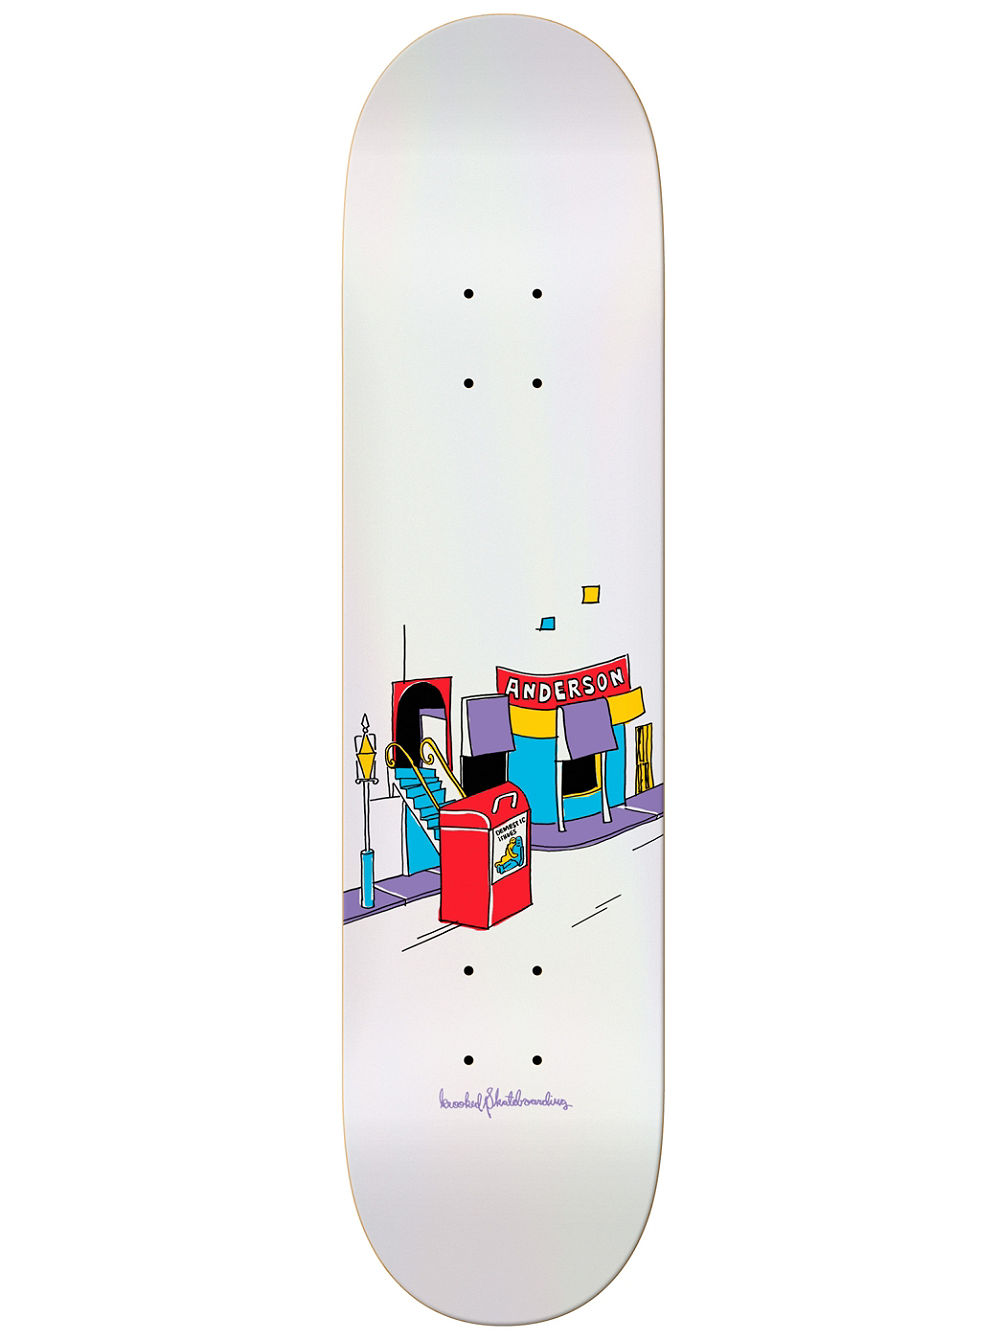 "Manderson Domestic 8.12"" Issues Skate Deck"